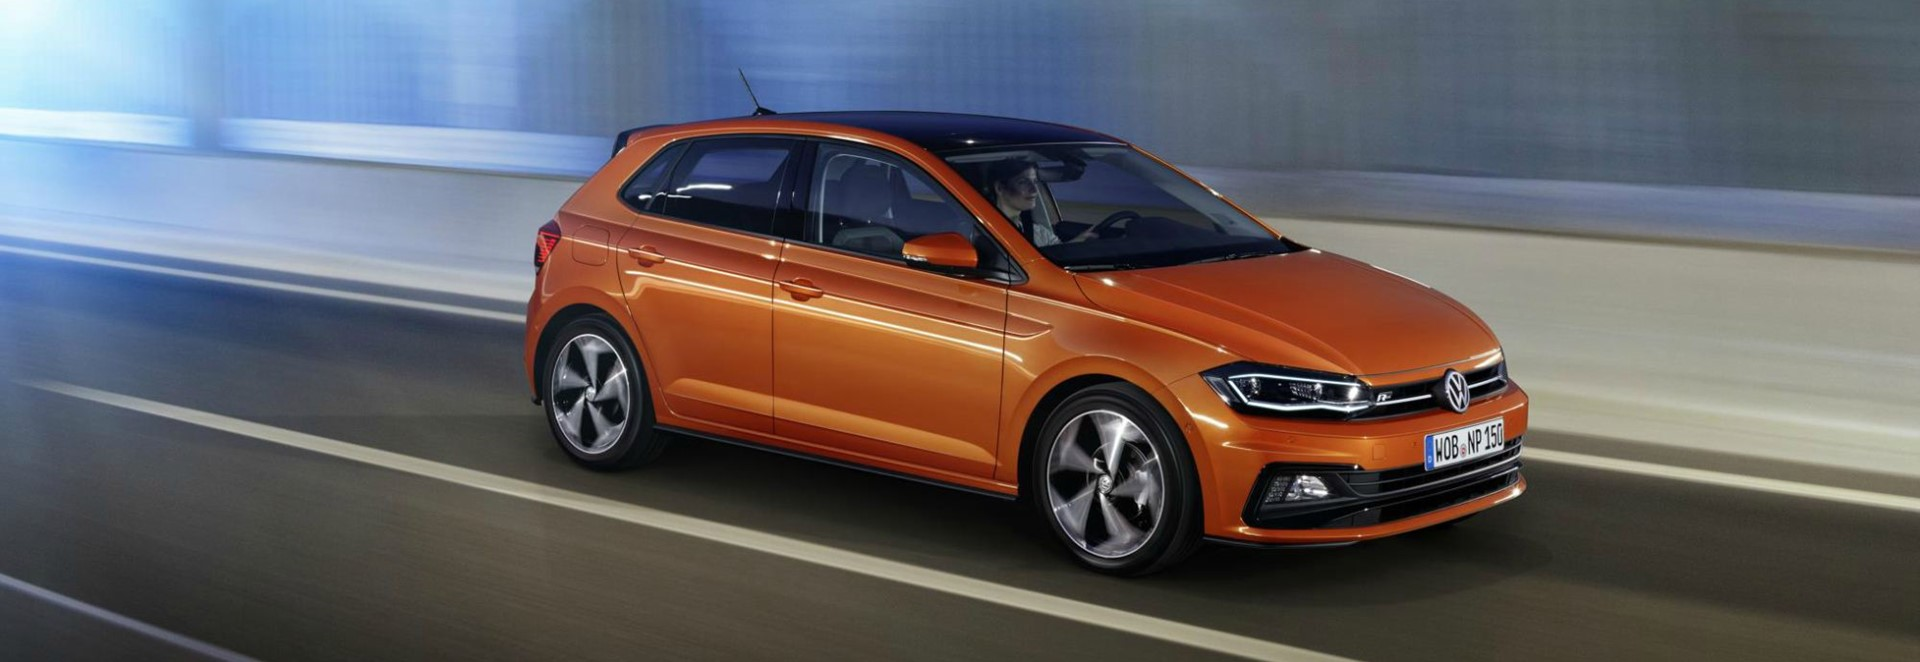 2018 Volkswagen Polo is bigger and posher